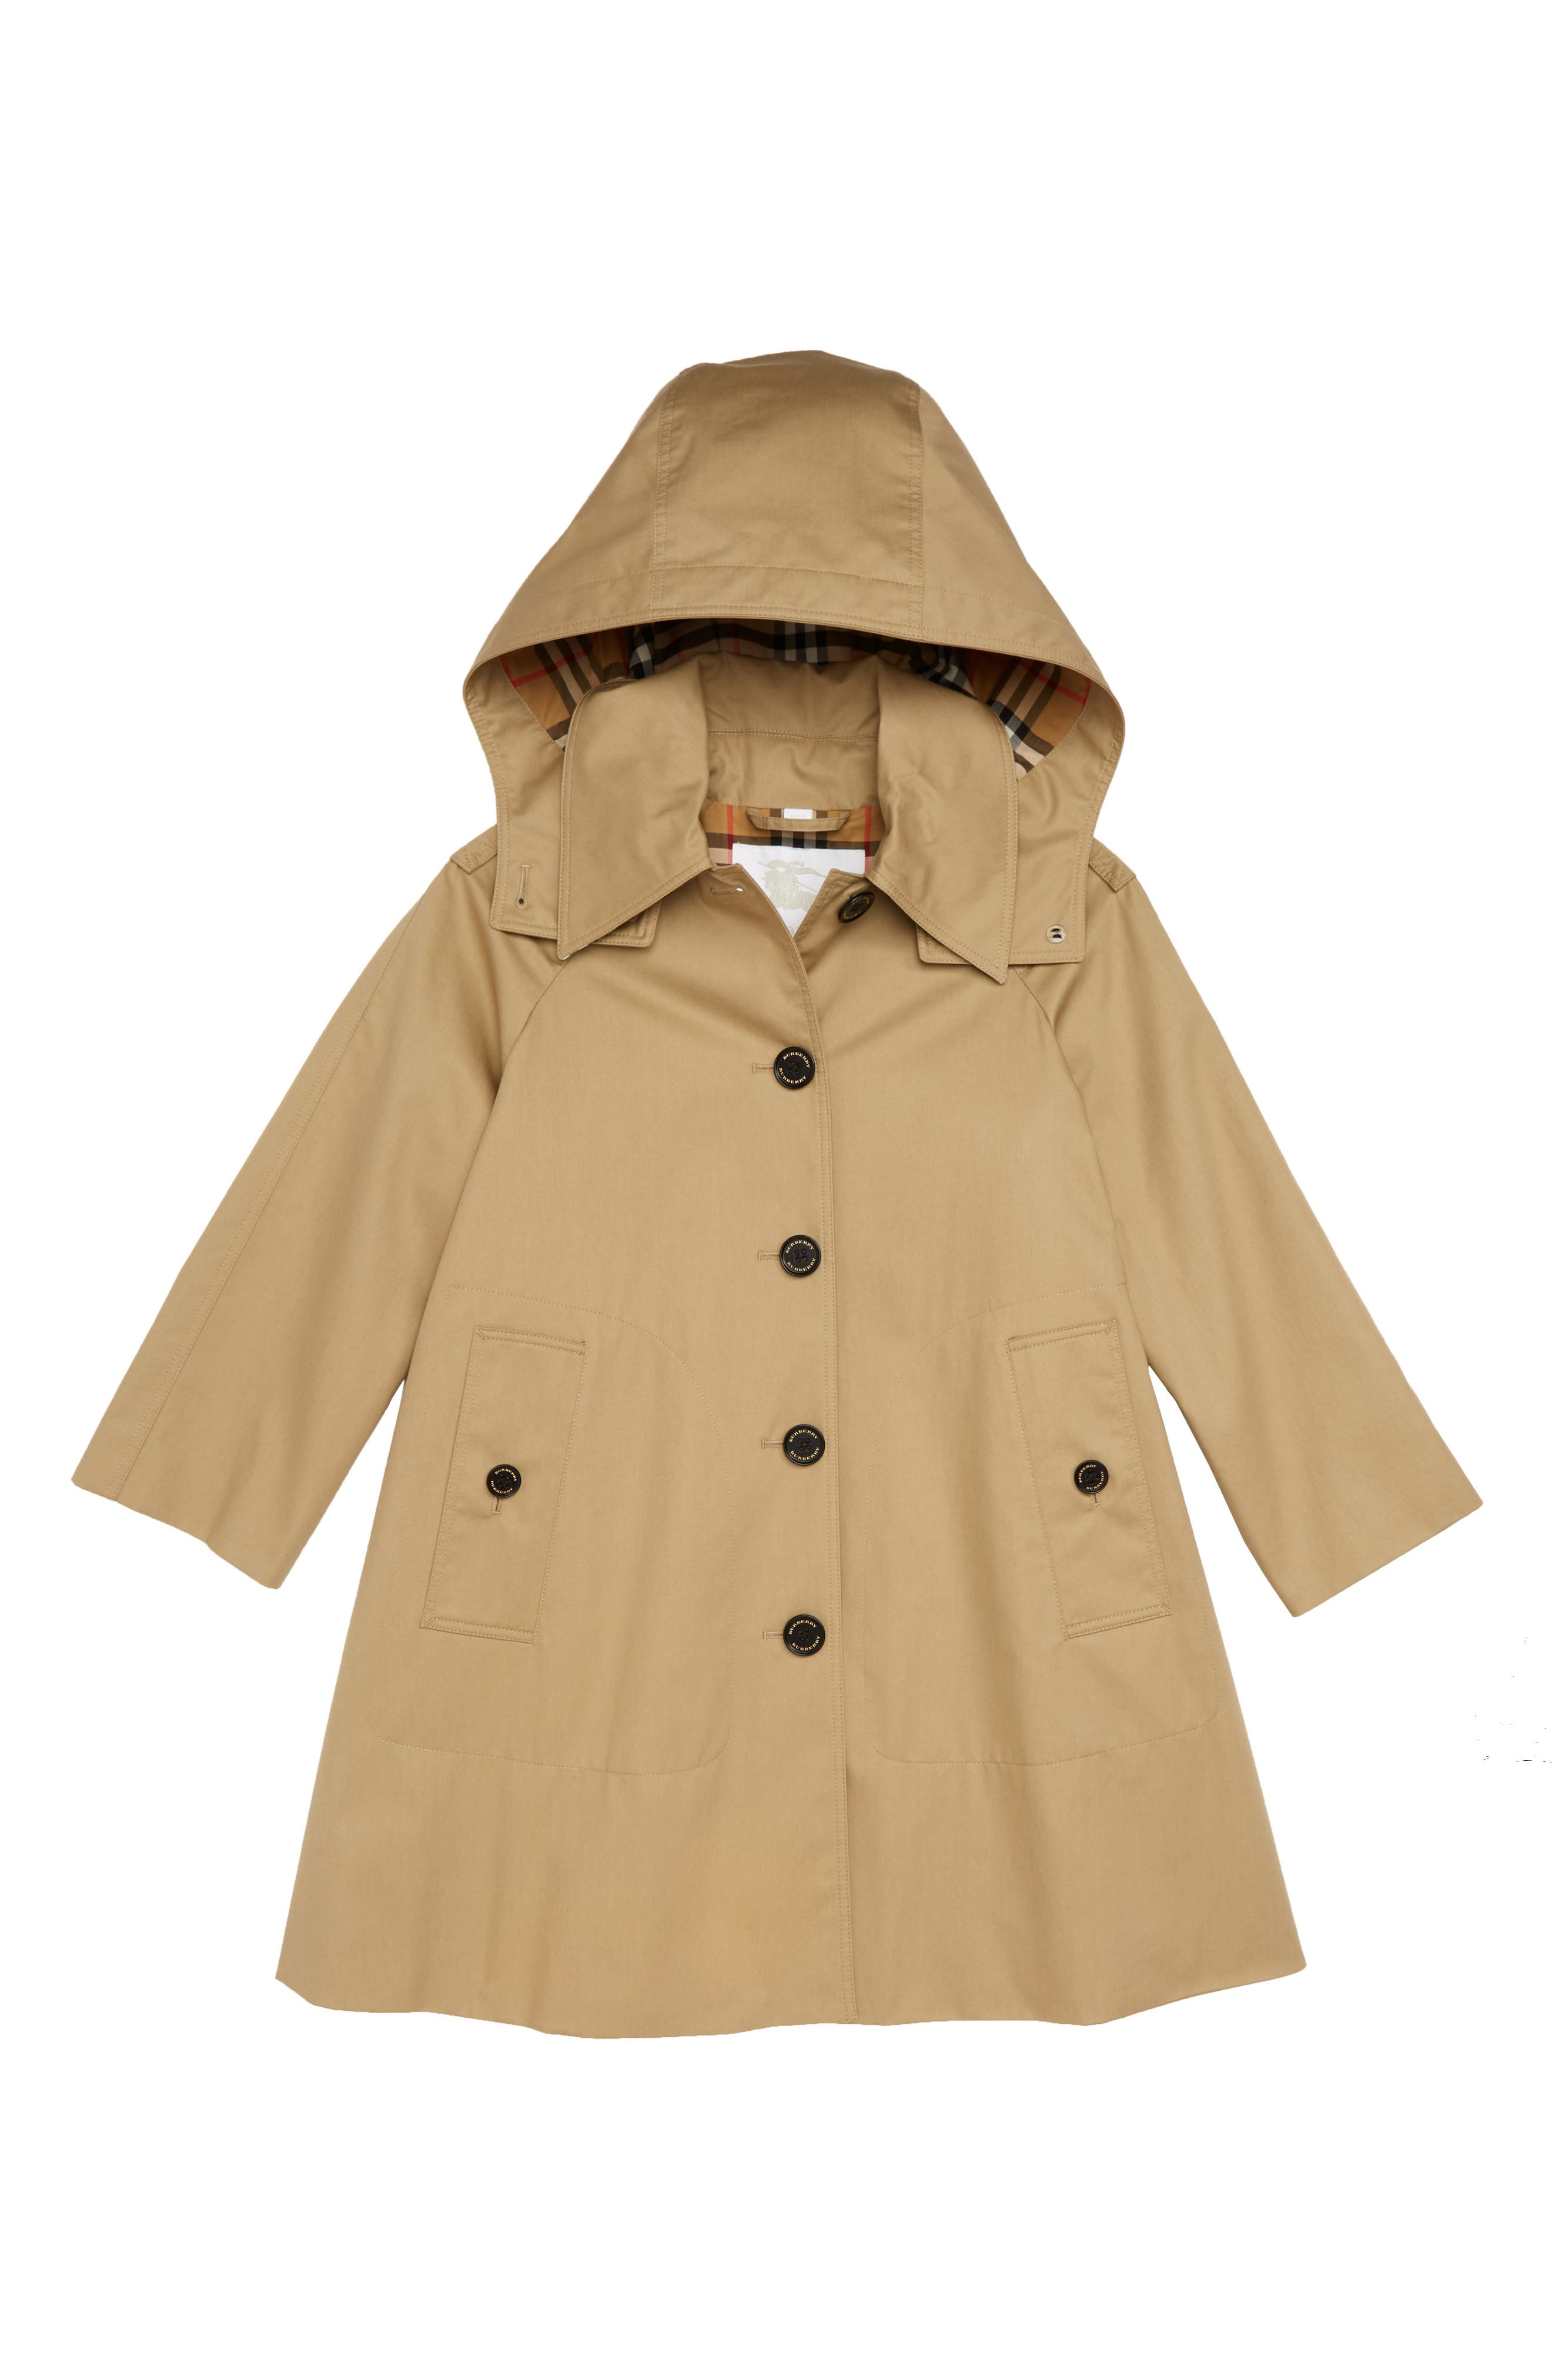 BURBERRY, Bethel Swing Coat, Main thumbnail 1, color, HONEY